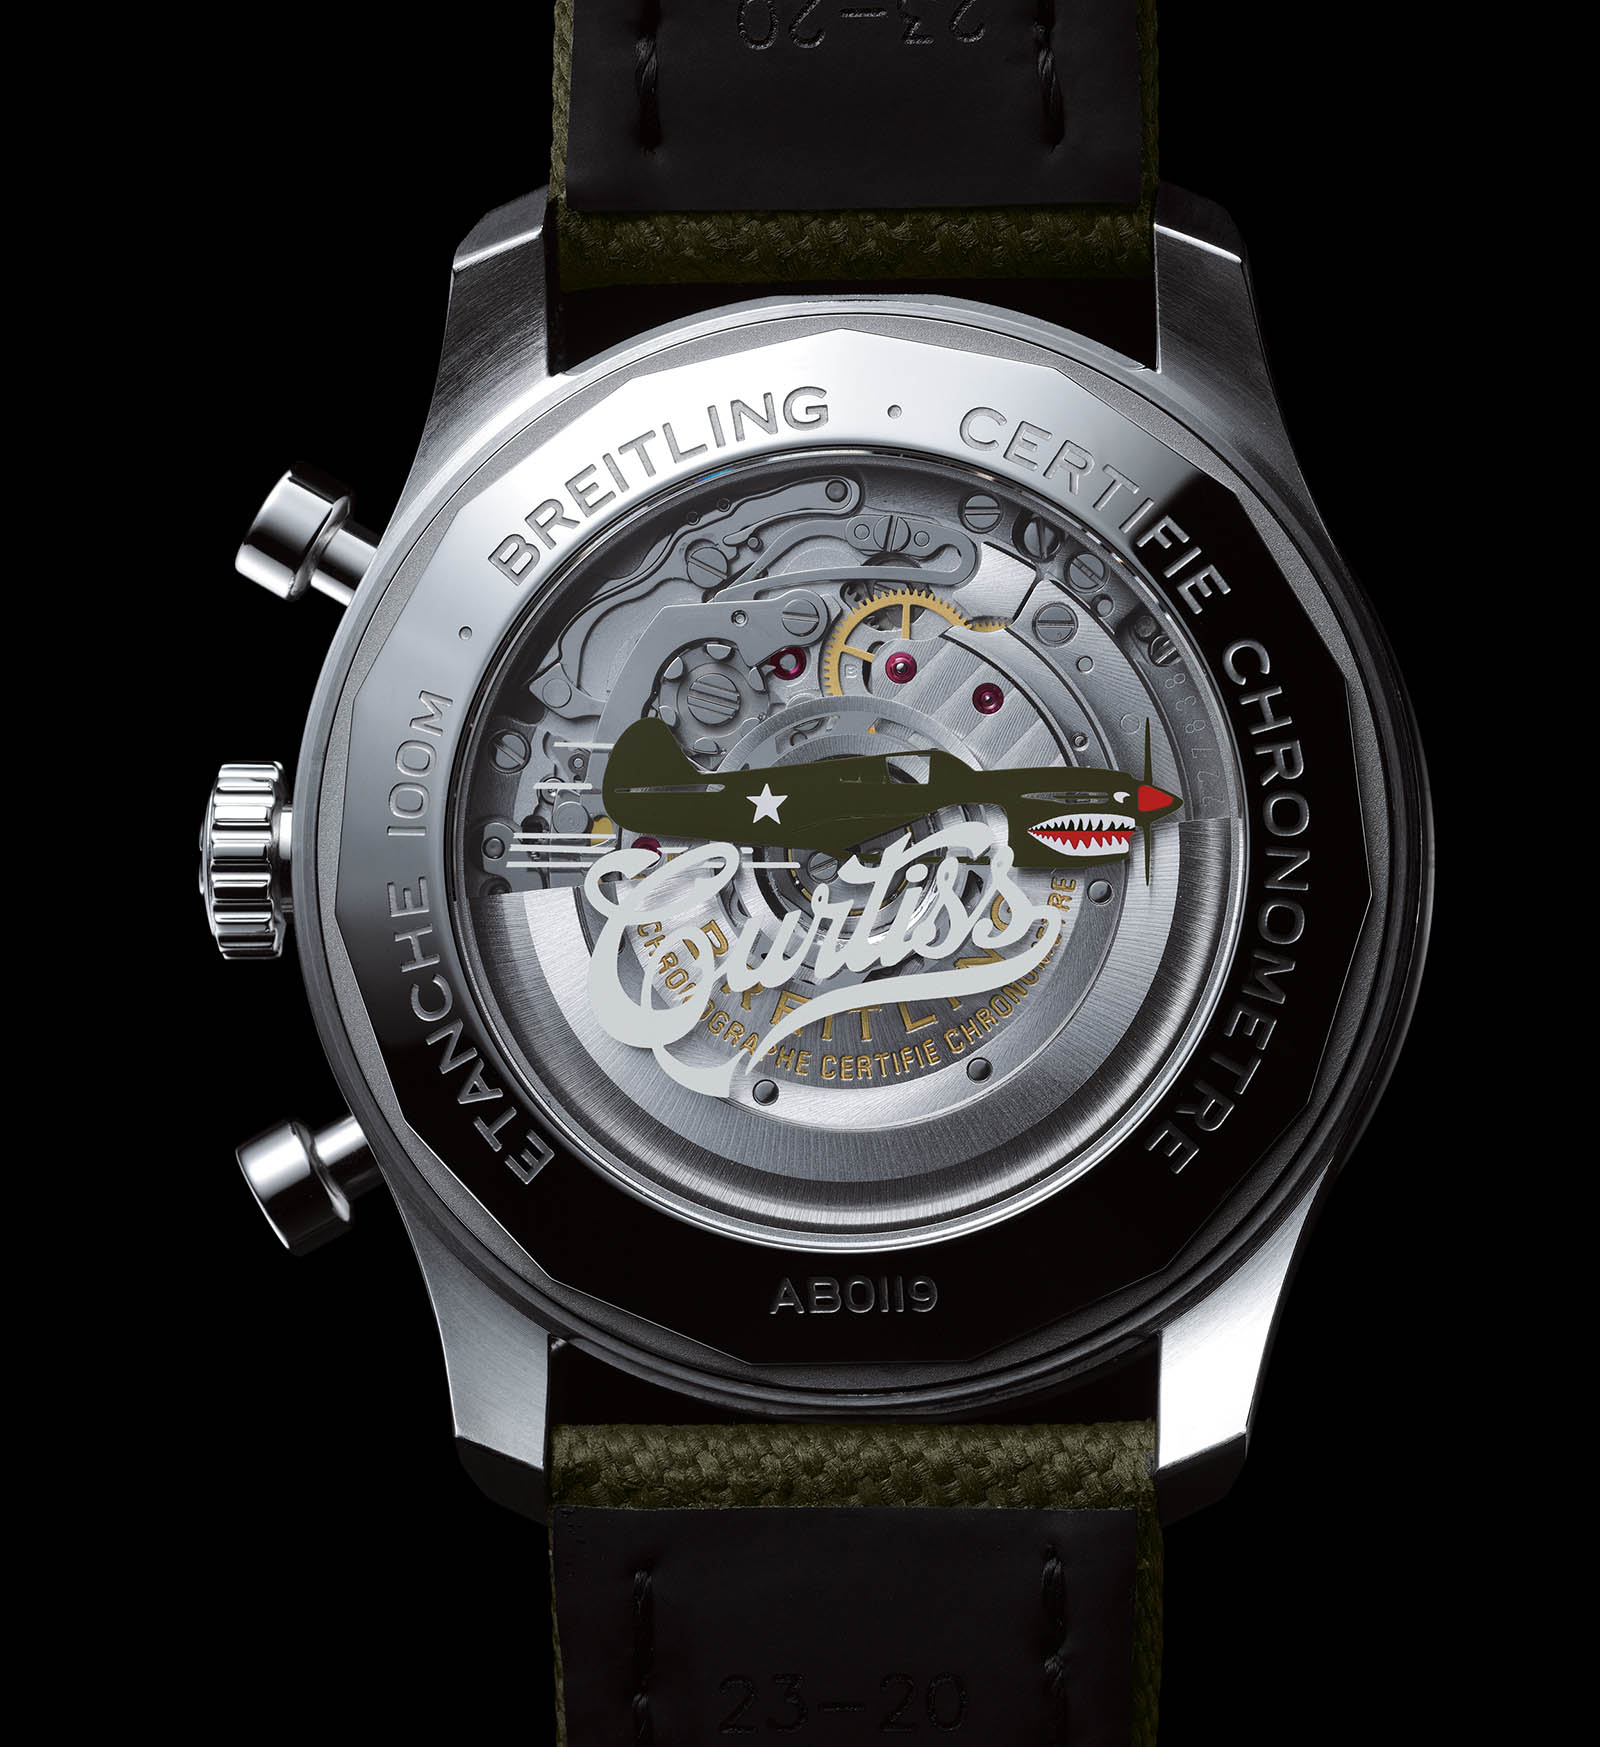 Caseback of the Aviator 8 B01 Chronograph 43 Curtiss Warhawk